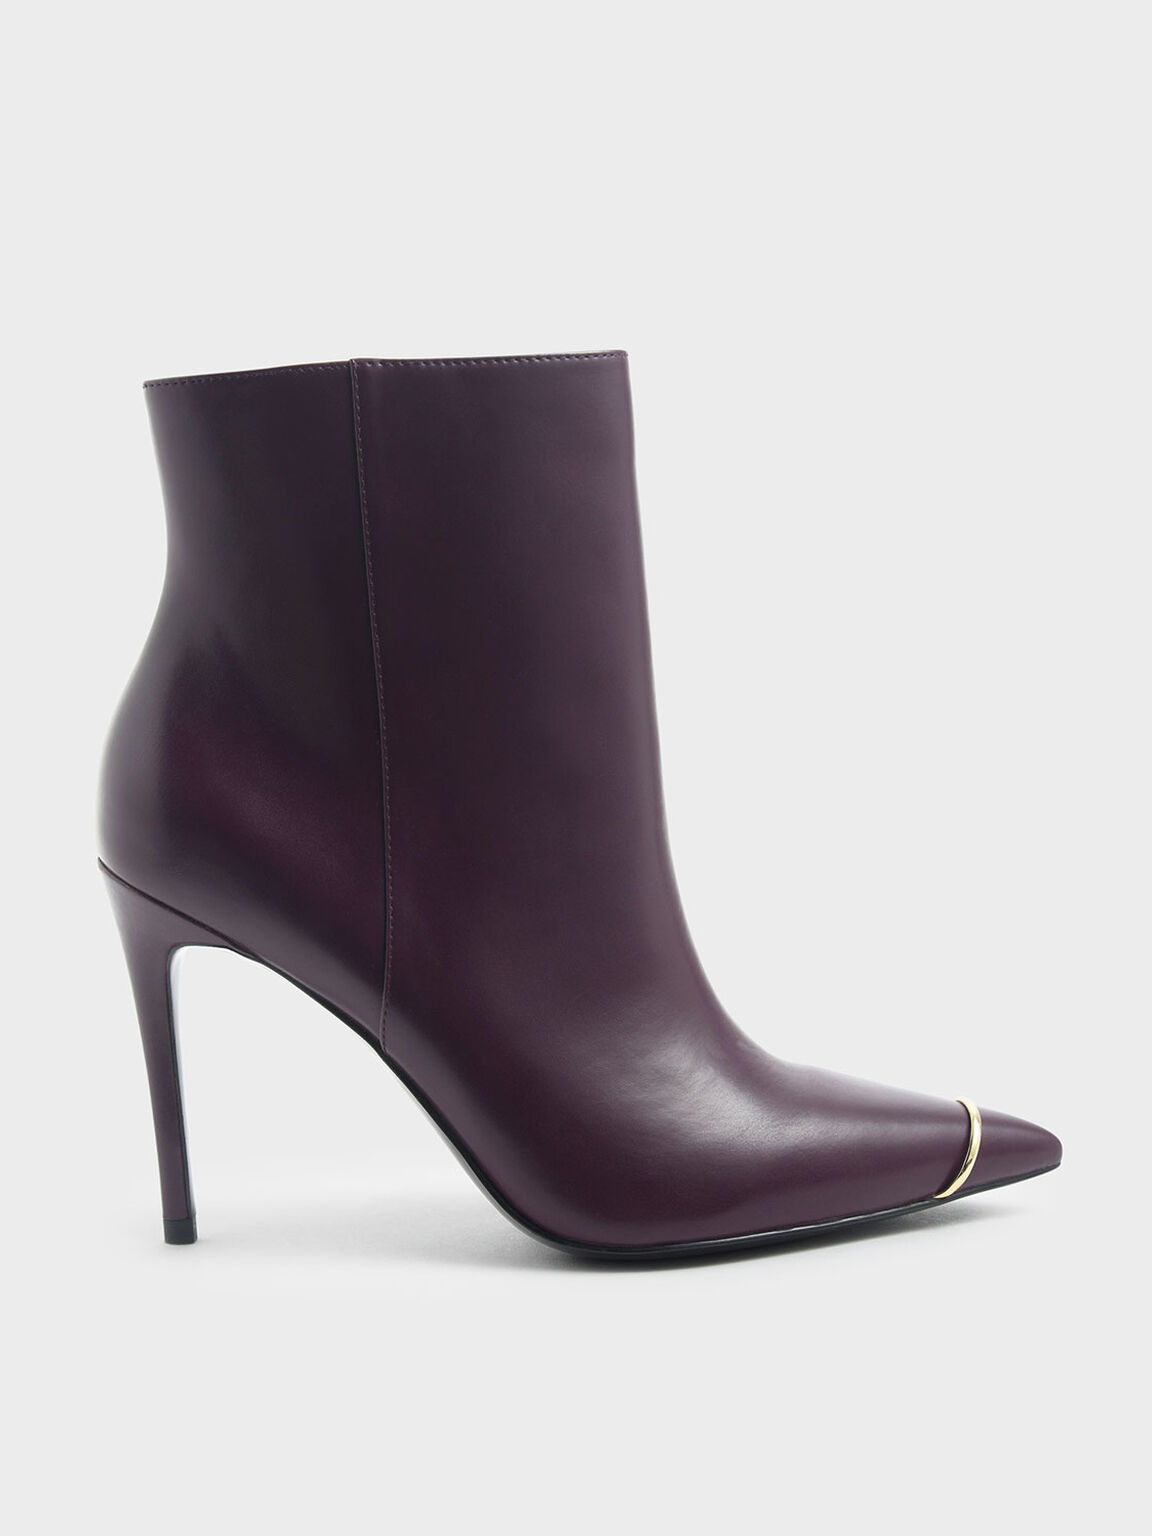 Metallic Accent Pointed Toe Stiletto Heel Boots, Purple, hi-res